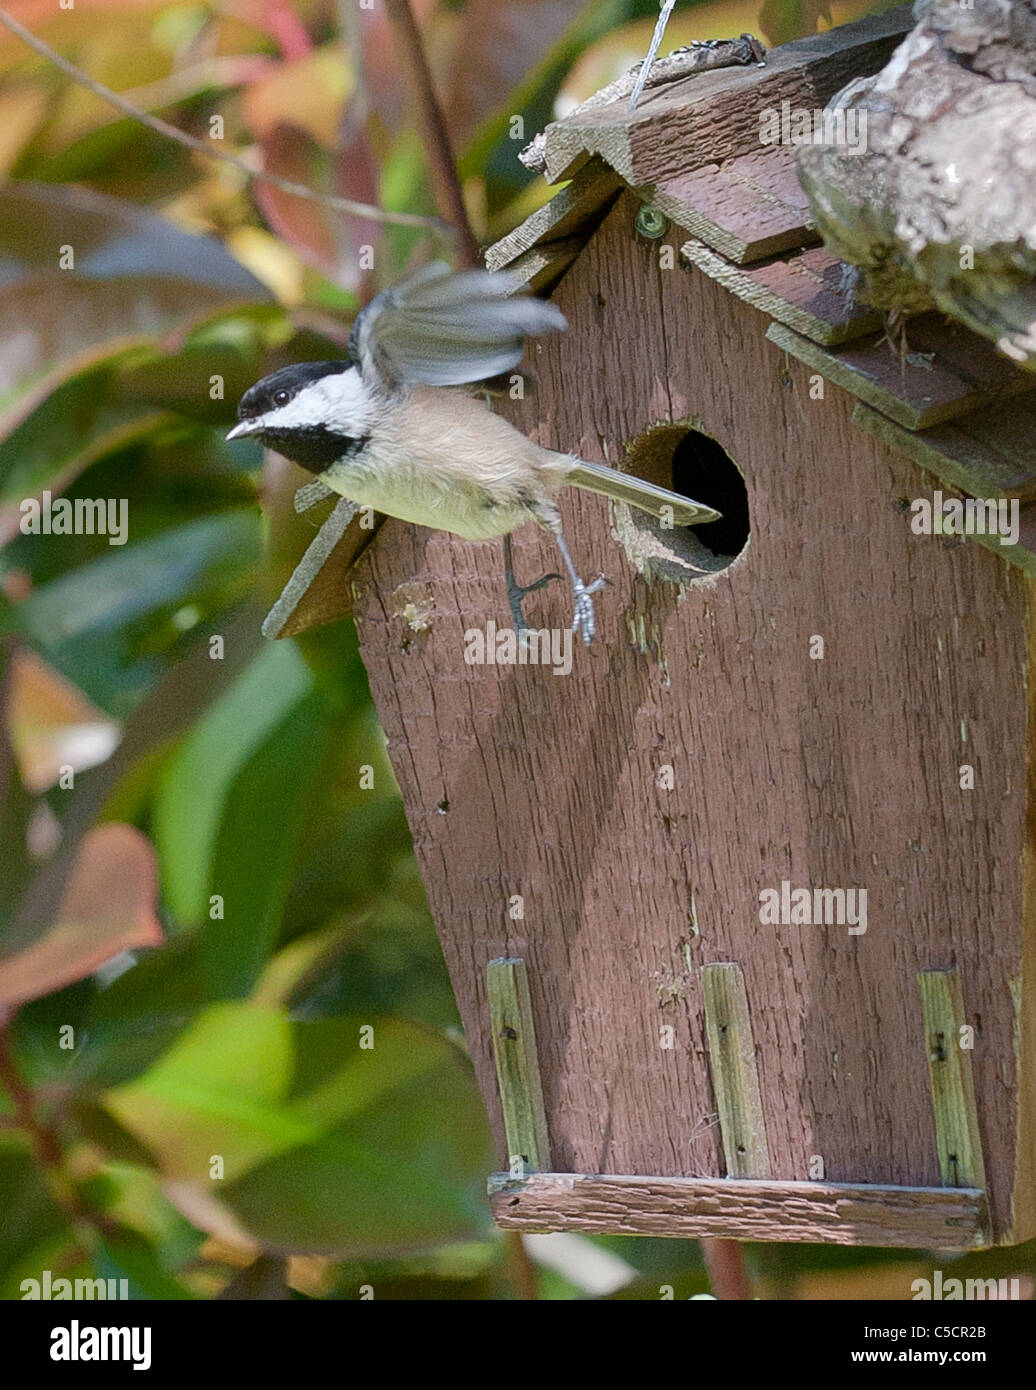 Adult chickadees in flight leaving birdhouse - Stock Image